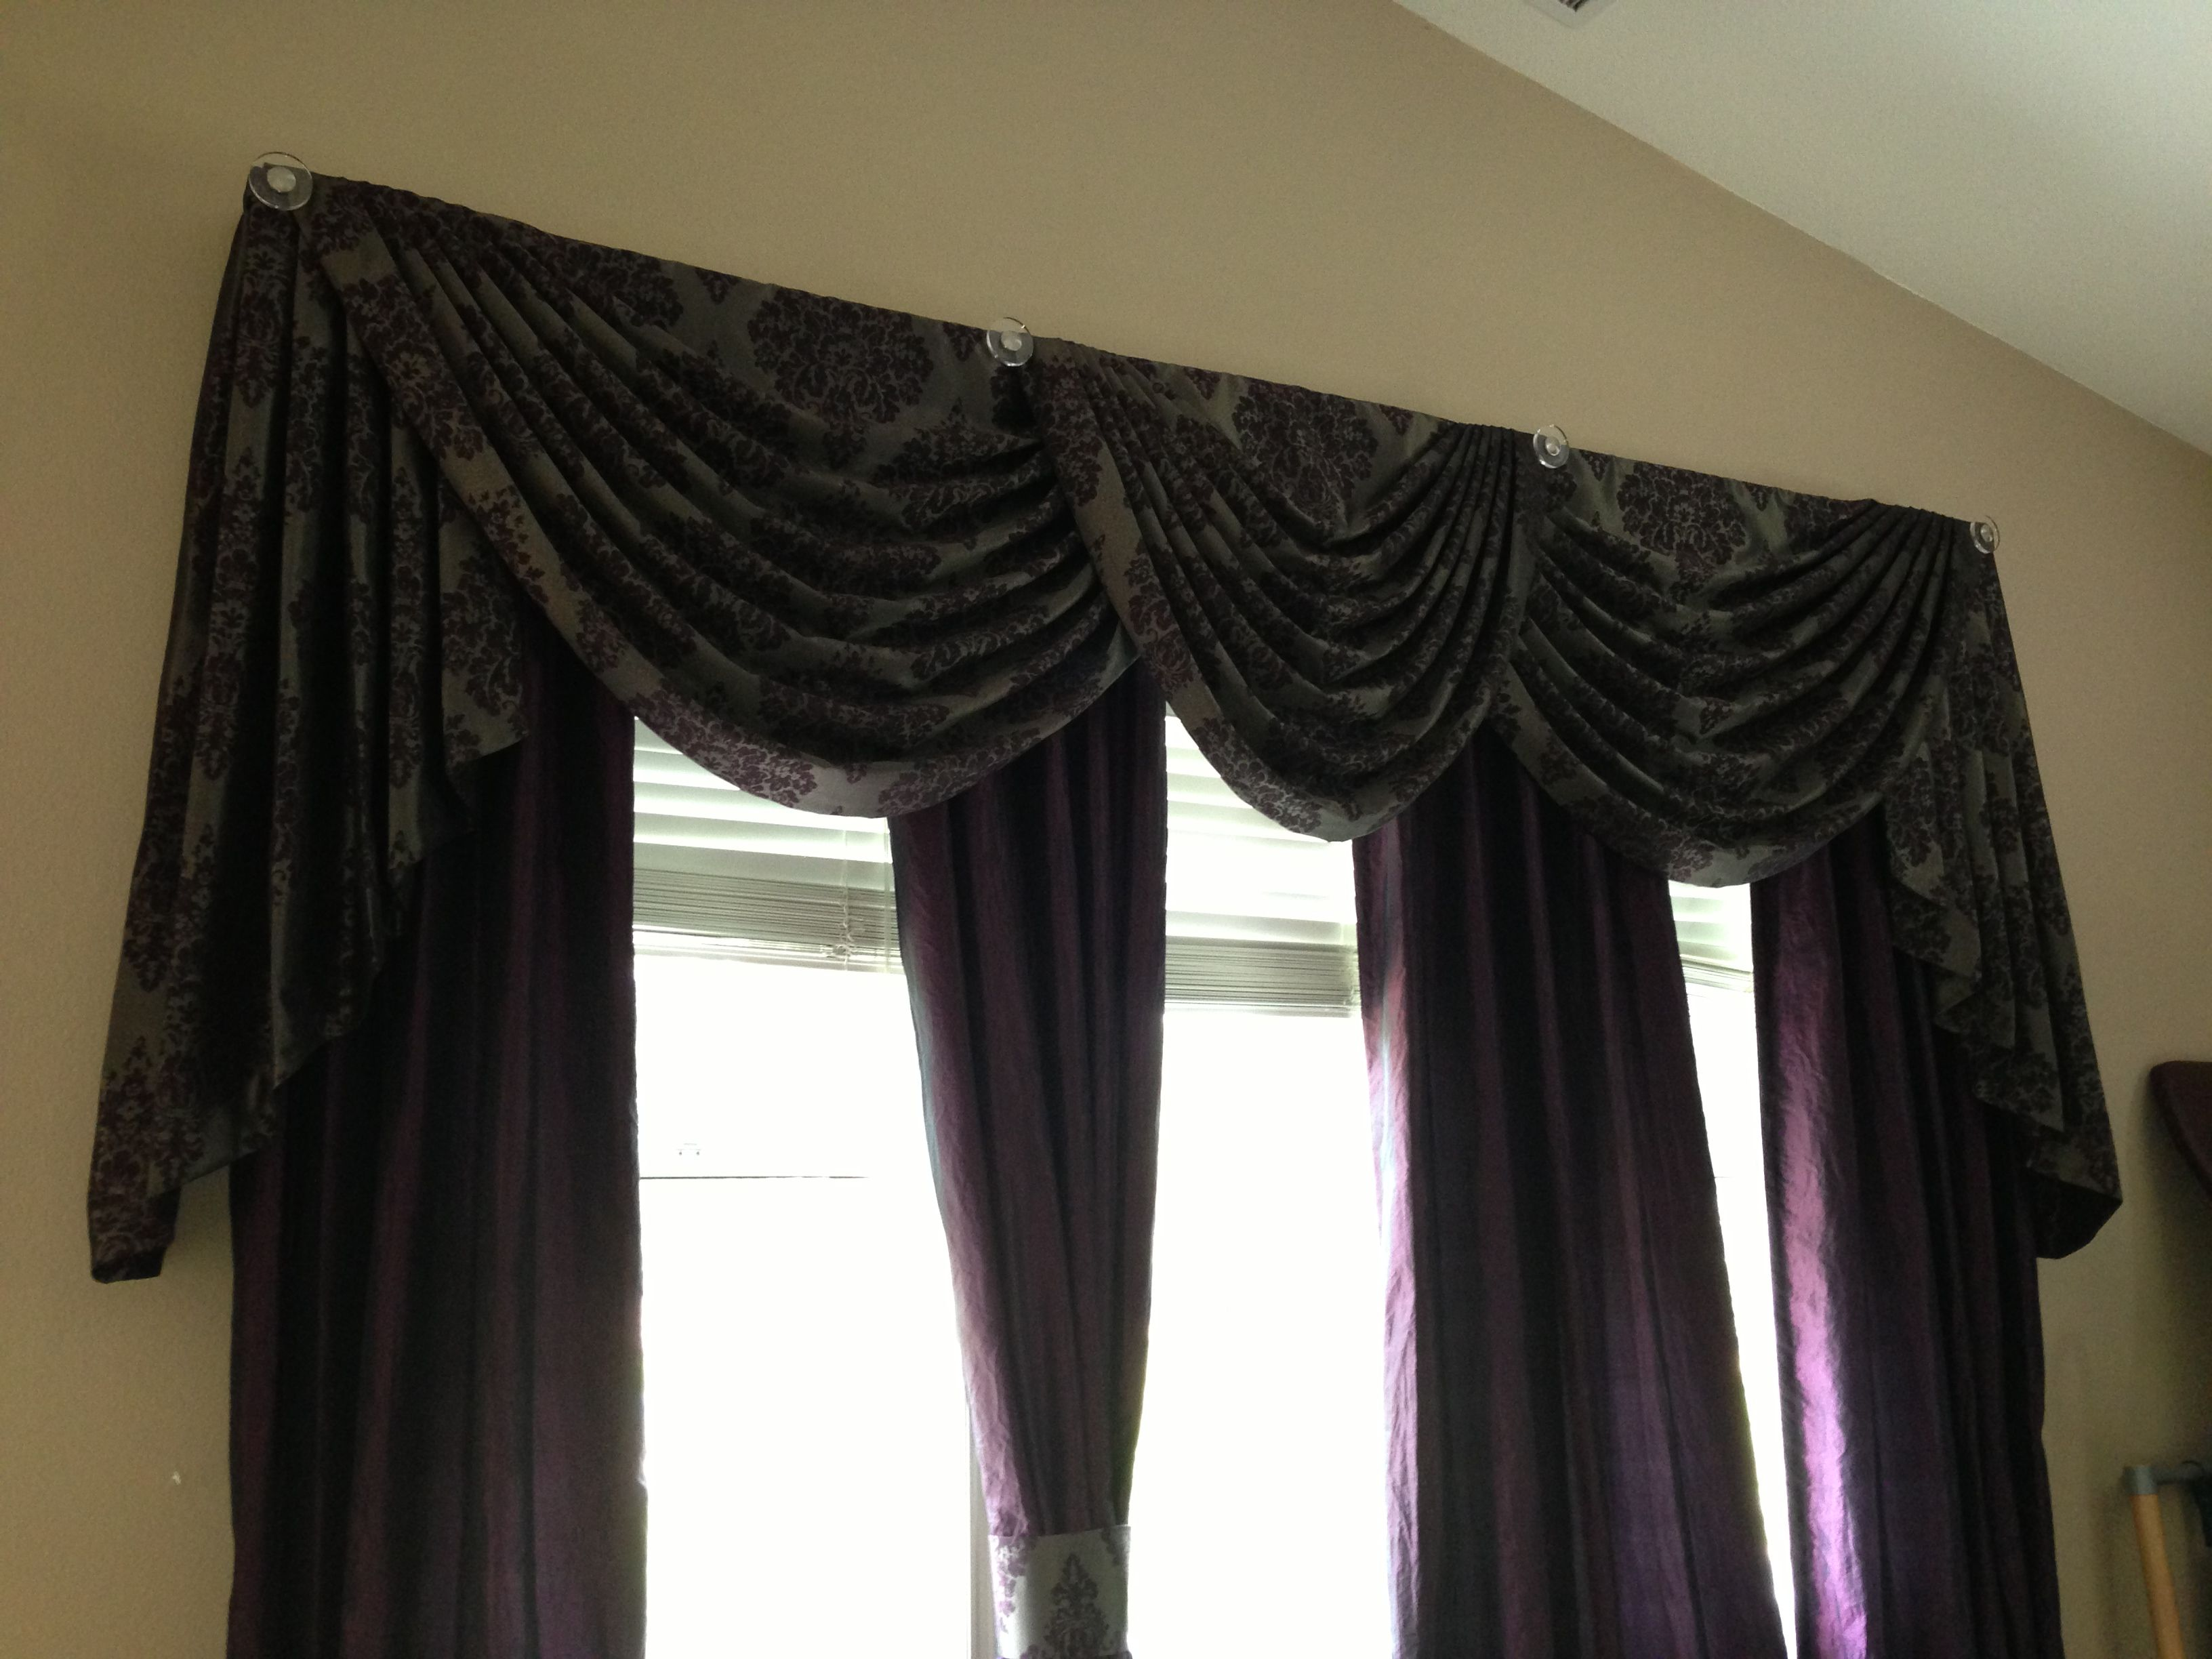 silk valances cheap breathtaking curtains apartment curtain panels teal cafe size drape living of rods black room sets full tan and gold for drapes